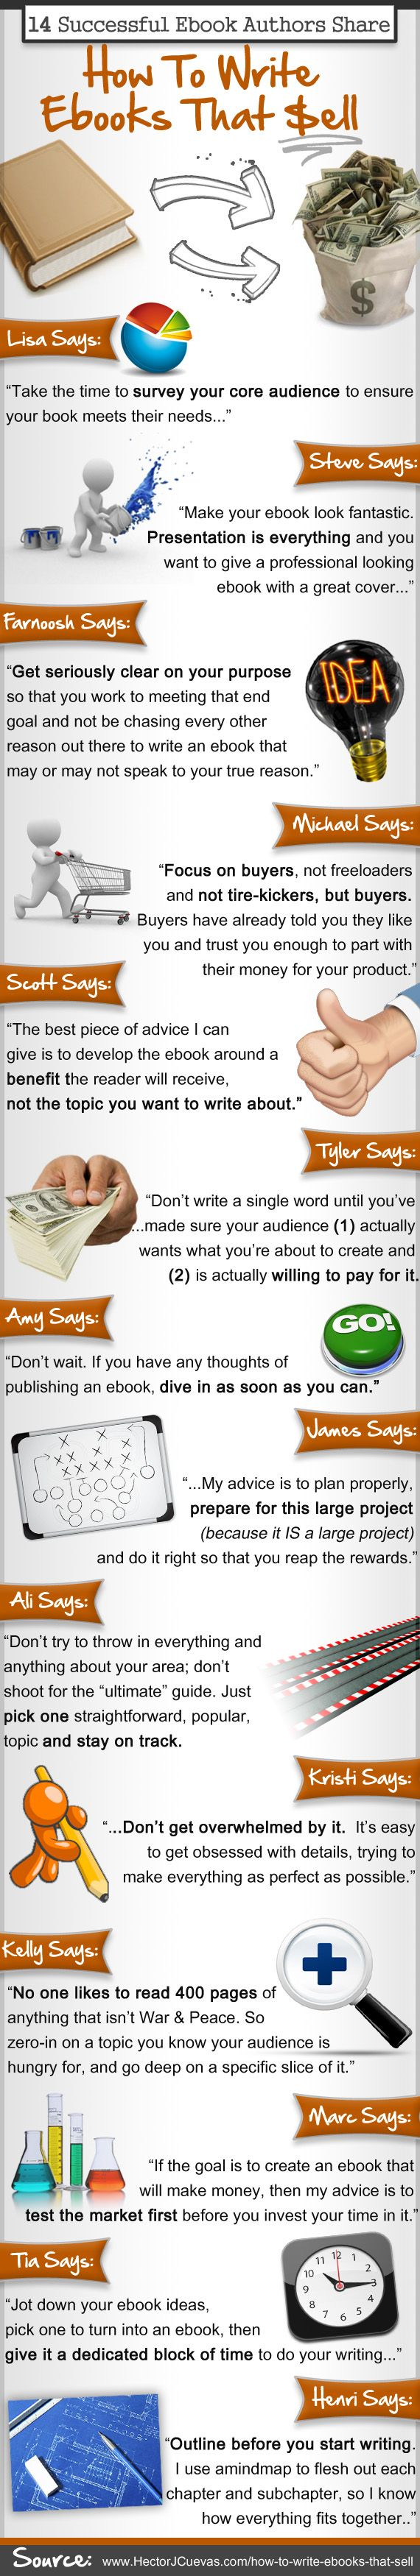 14 Successful #ebook #authors Share How To Write Ebooks That Sell